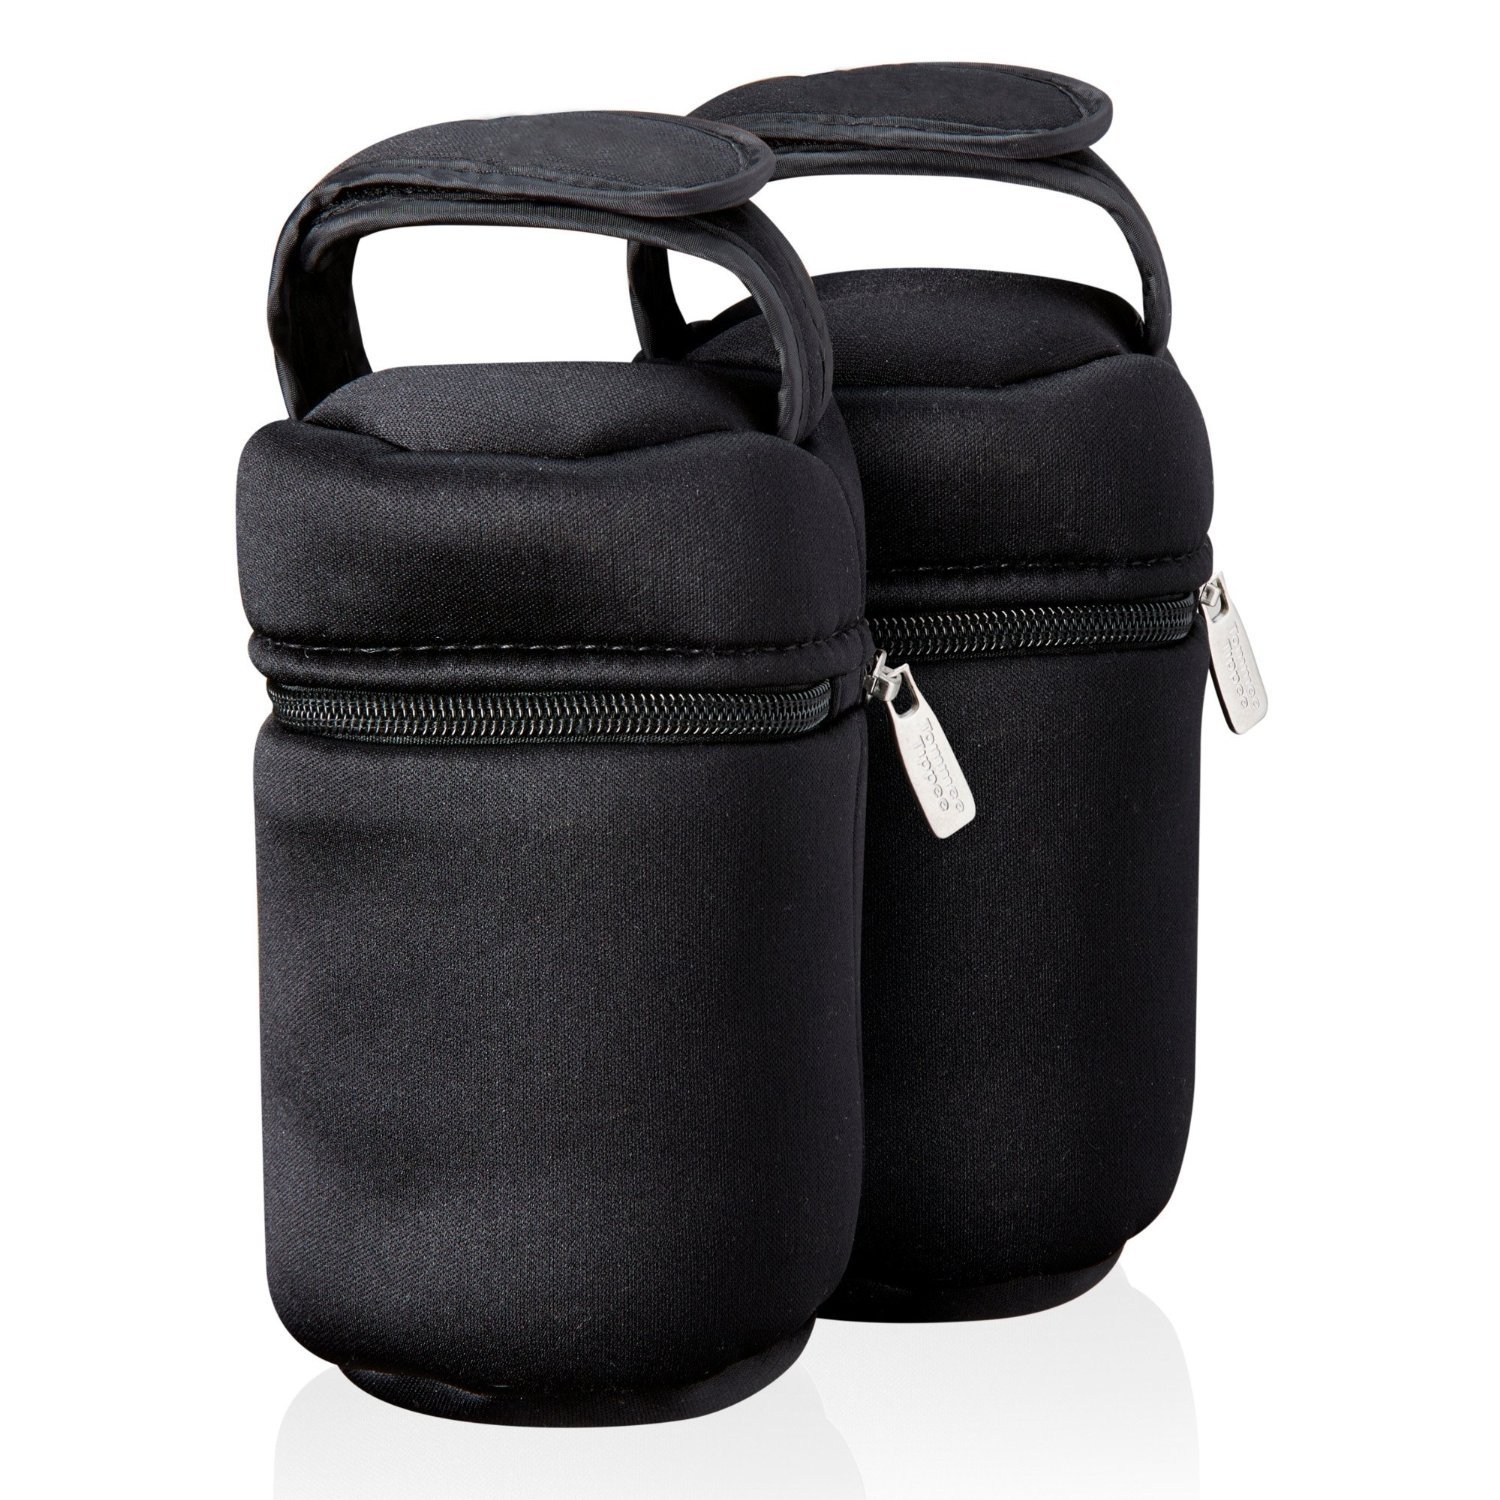 Insulated Bottle Carriers -Pack of 2 by RIVENBERT